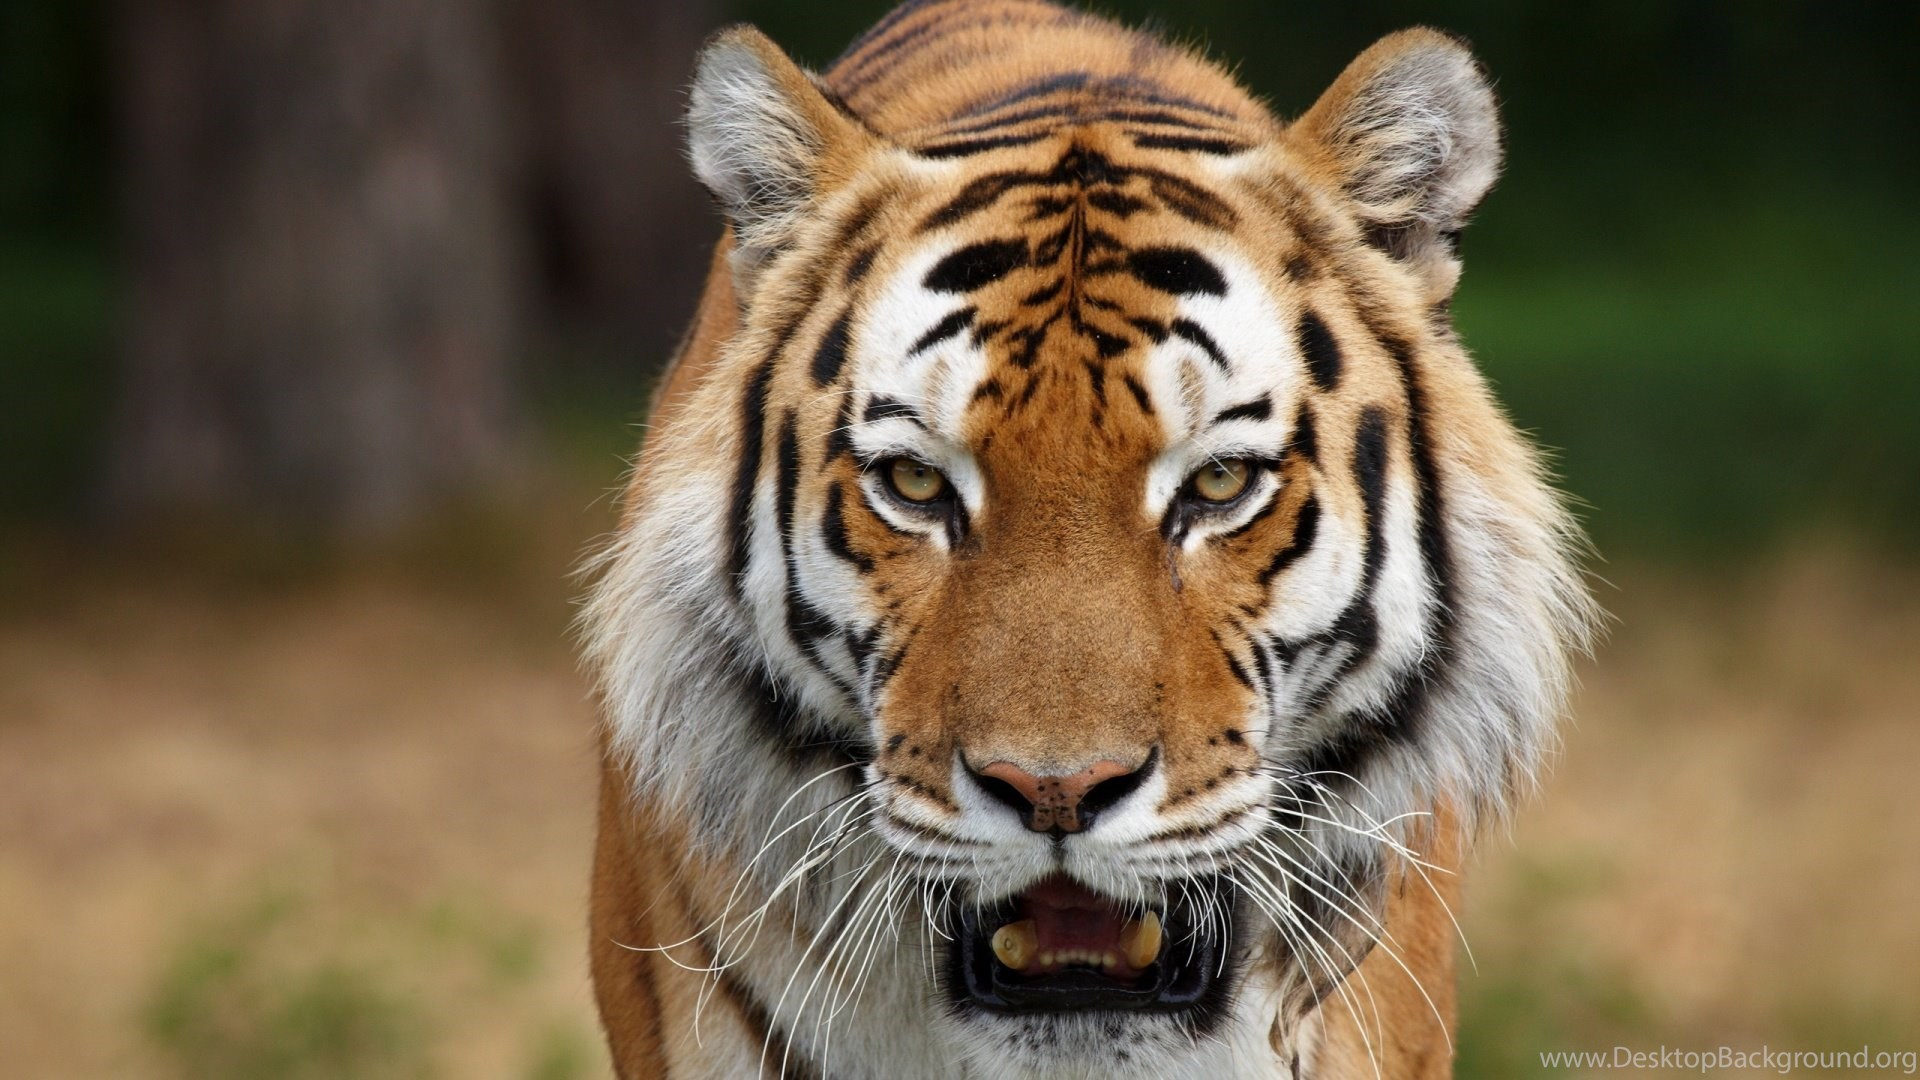 high resolution tiger wild wallpapers full size siwallpaperhd 15654